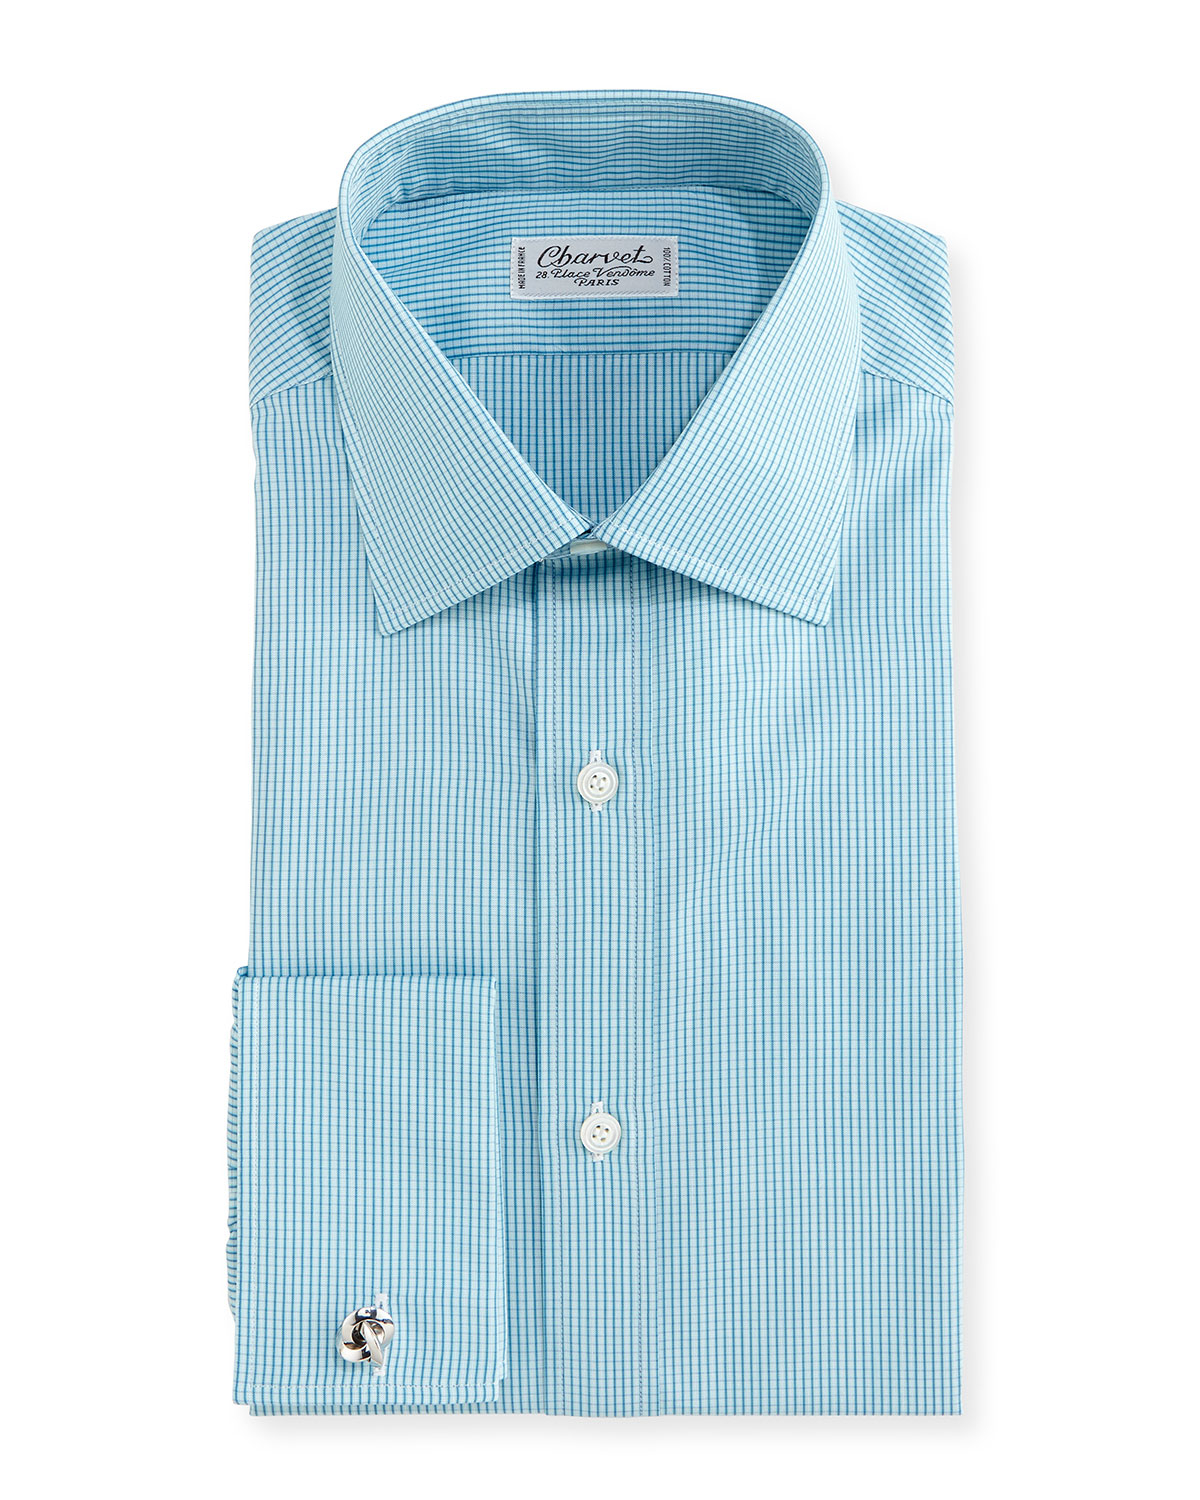 Charvet Check French Cuff Dress Shirt In Blue For Men Lyst